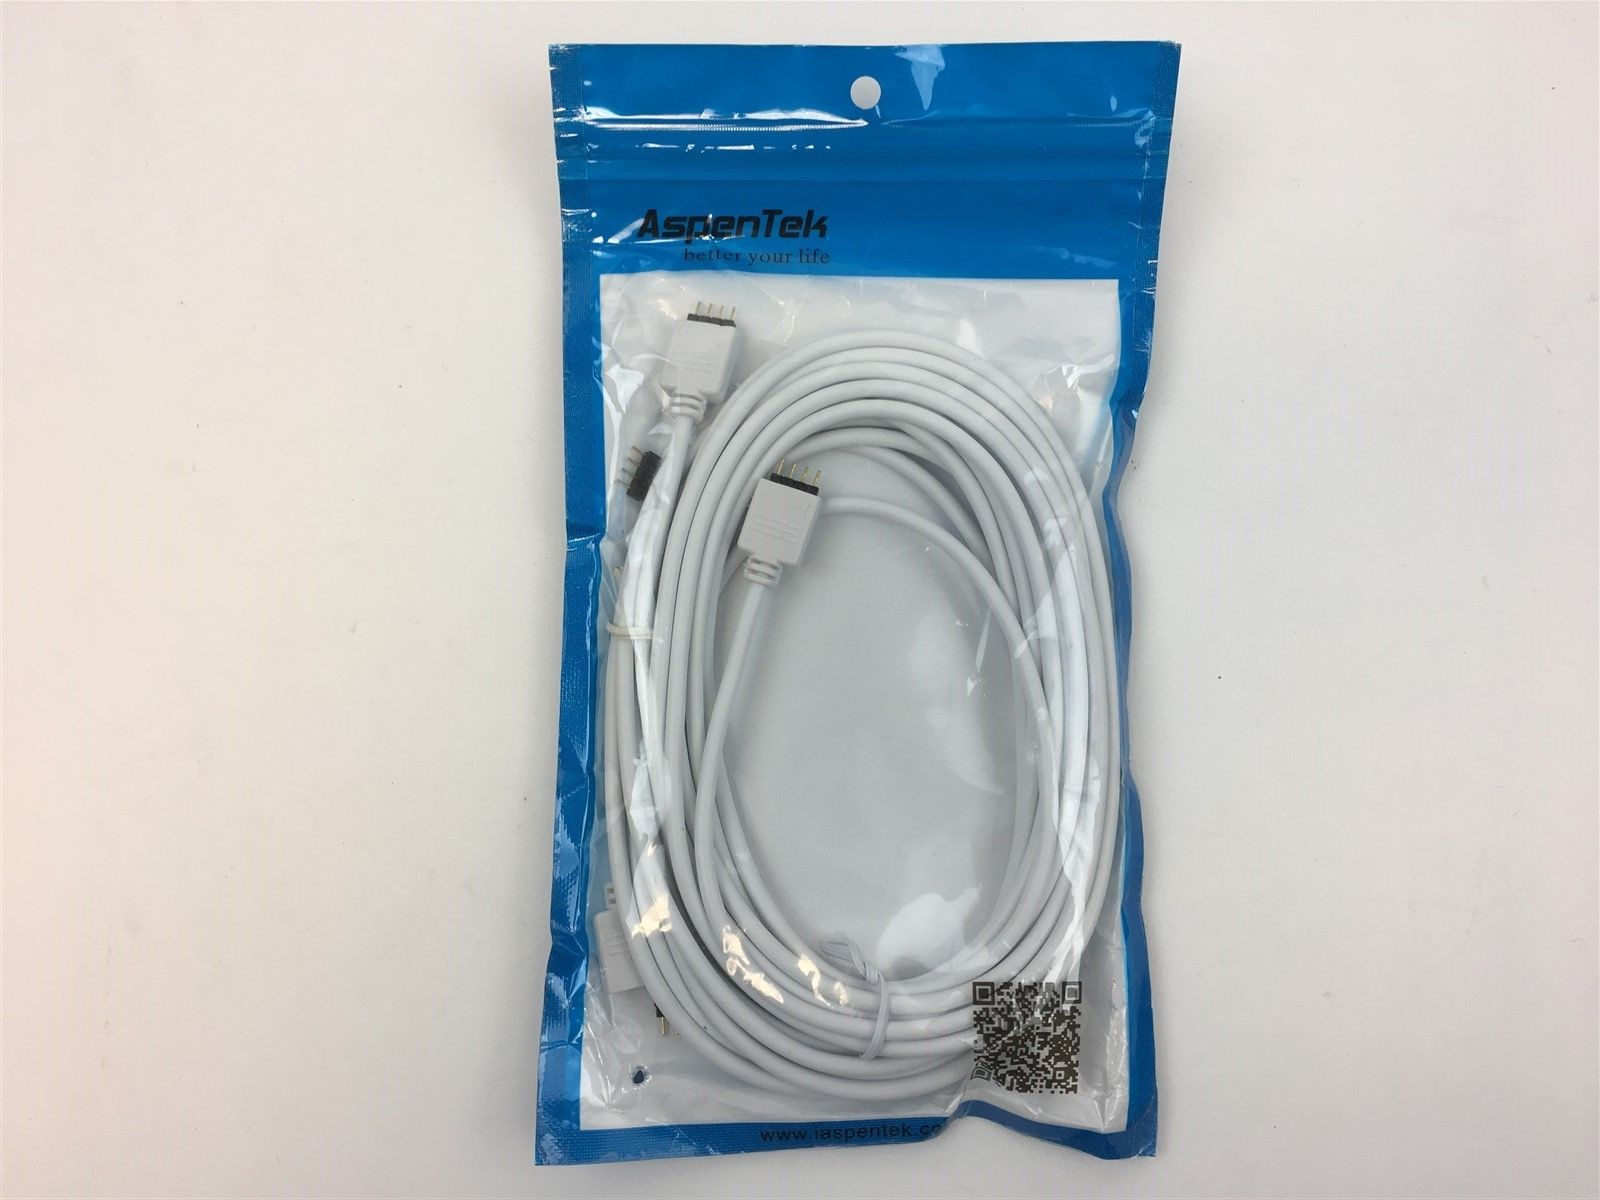 AspenTek DC 12v RGB LED Strip Light Connection Cable 4-Pin for 3528 5050 2.5m